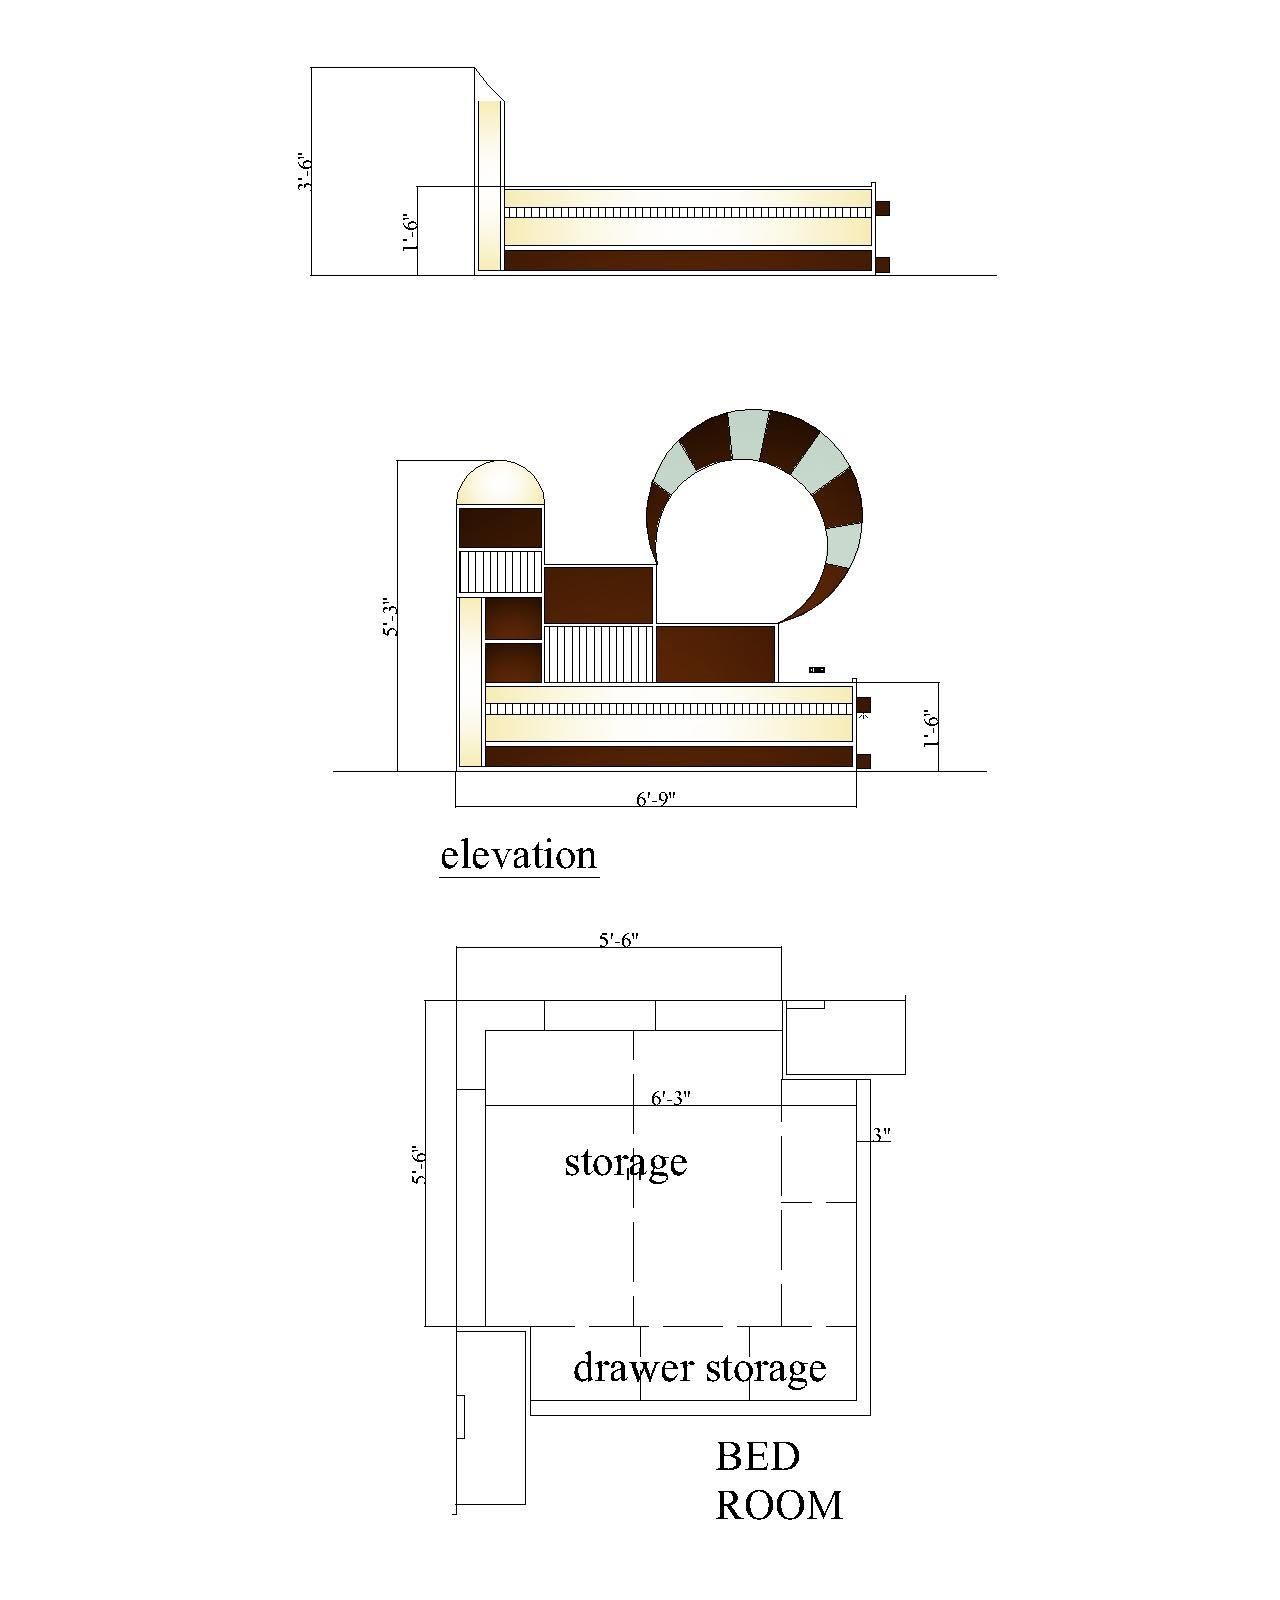 Bed design drawing and bed elevation - GharExpert